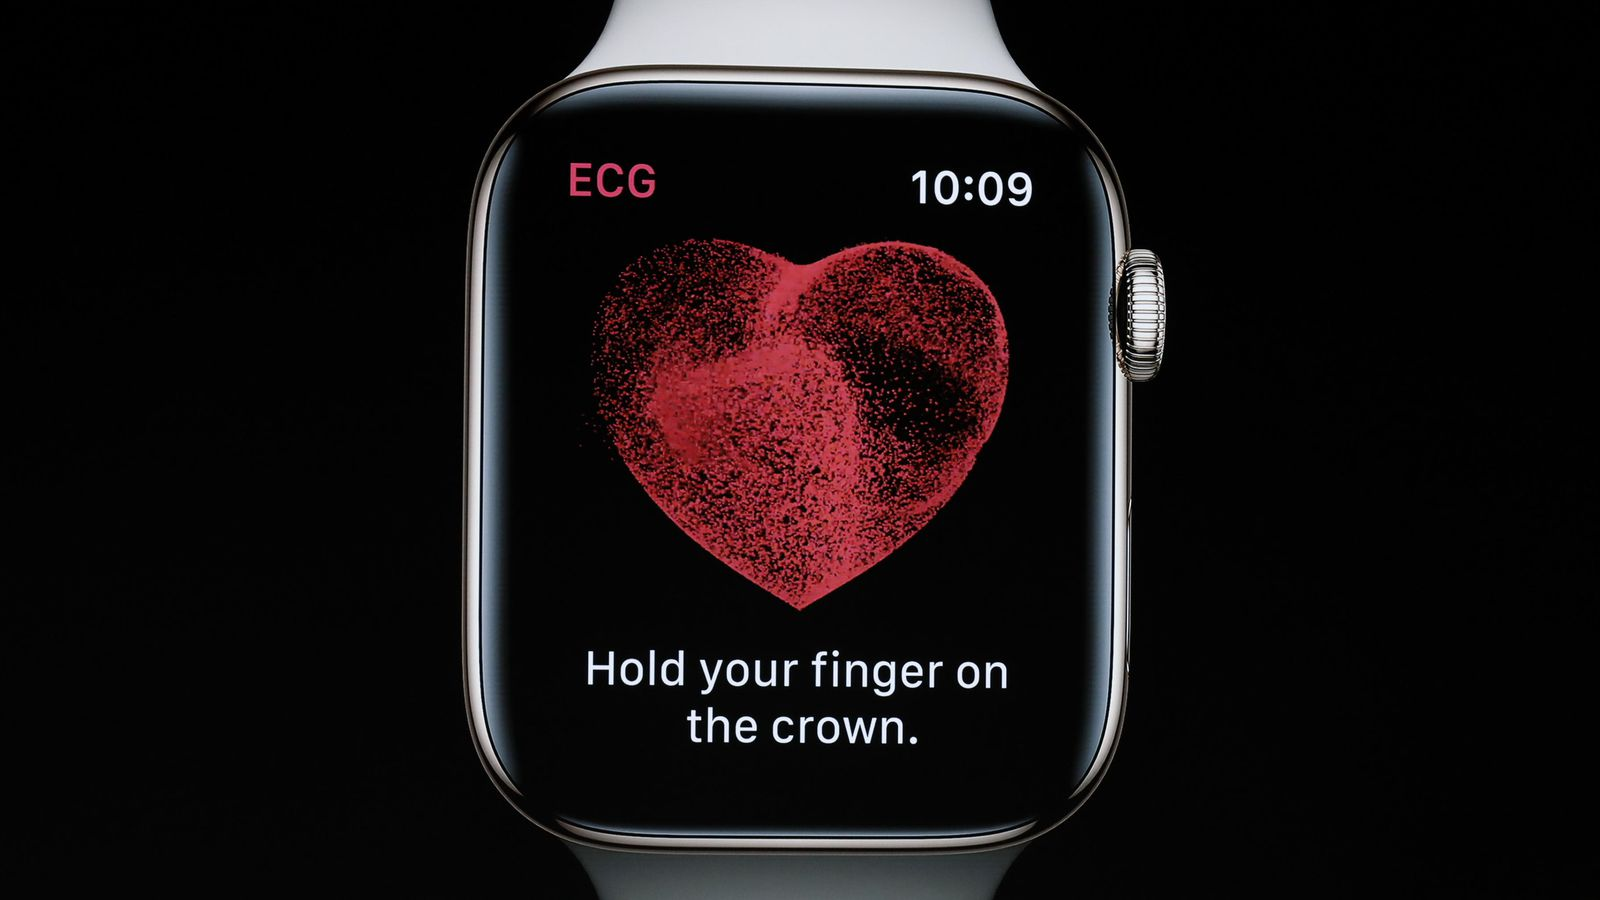 Aplicación de electrocardiogramas del Apple Watch Series 4